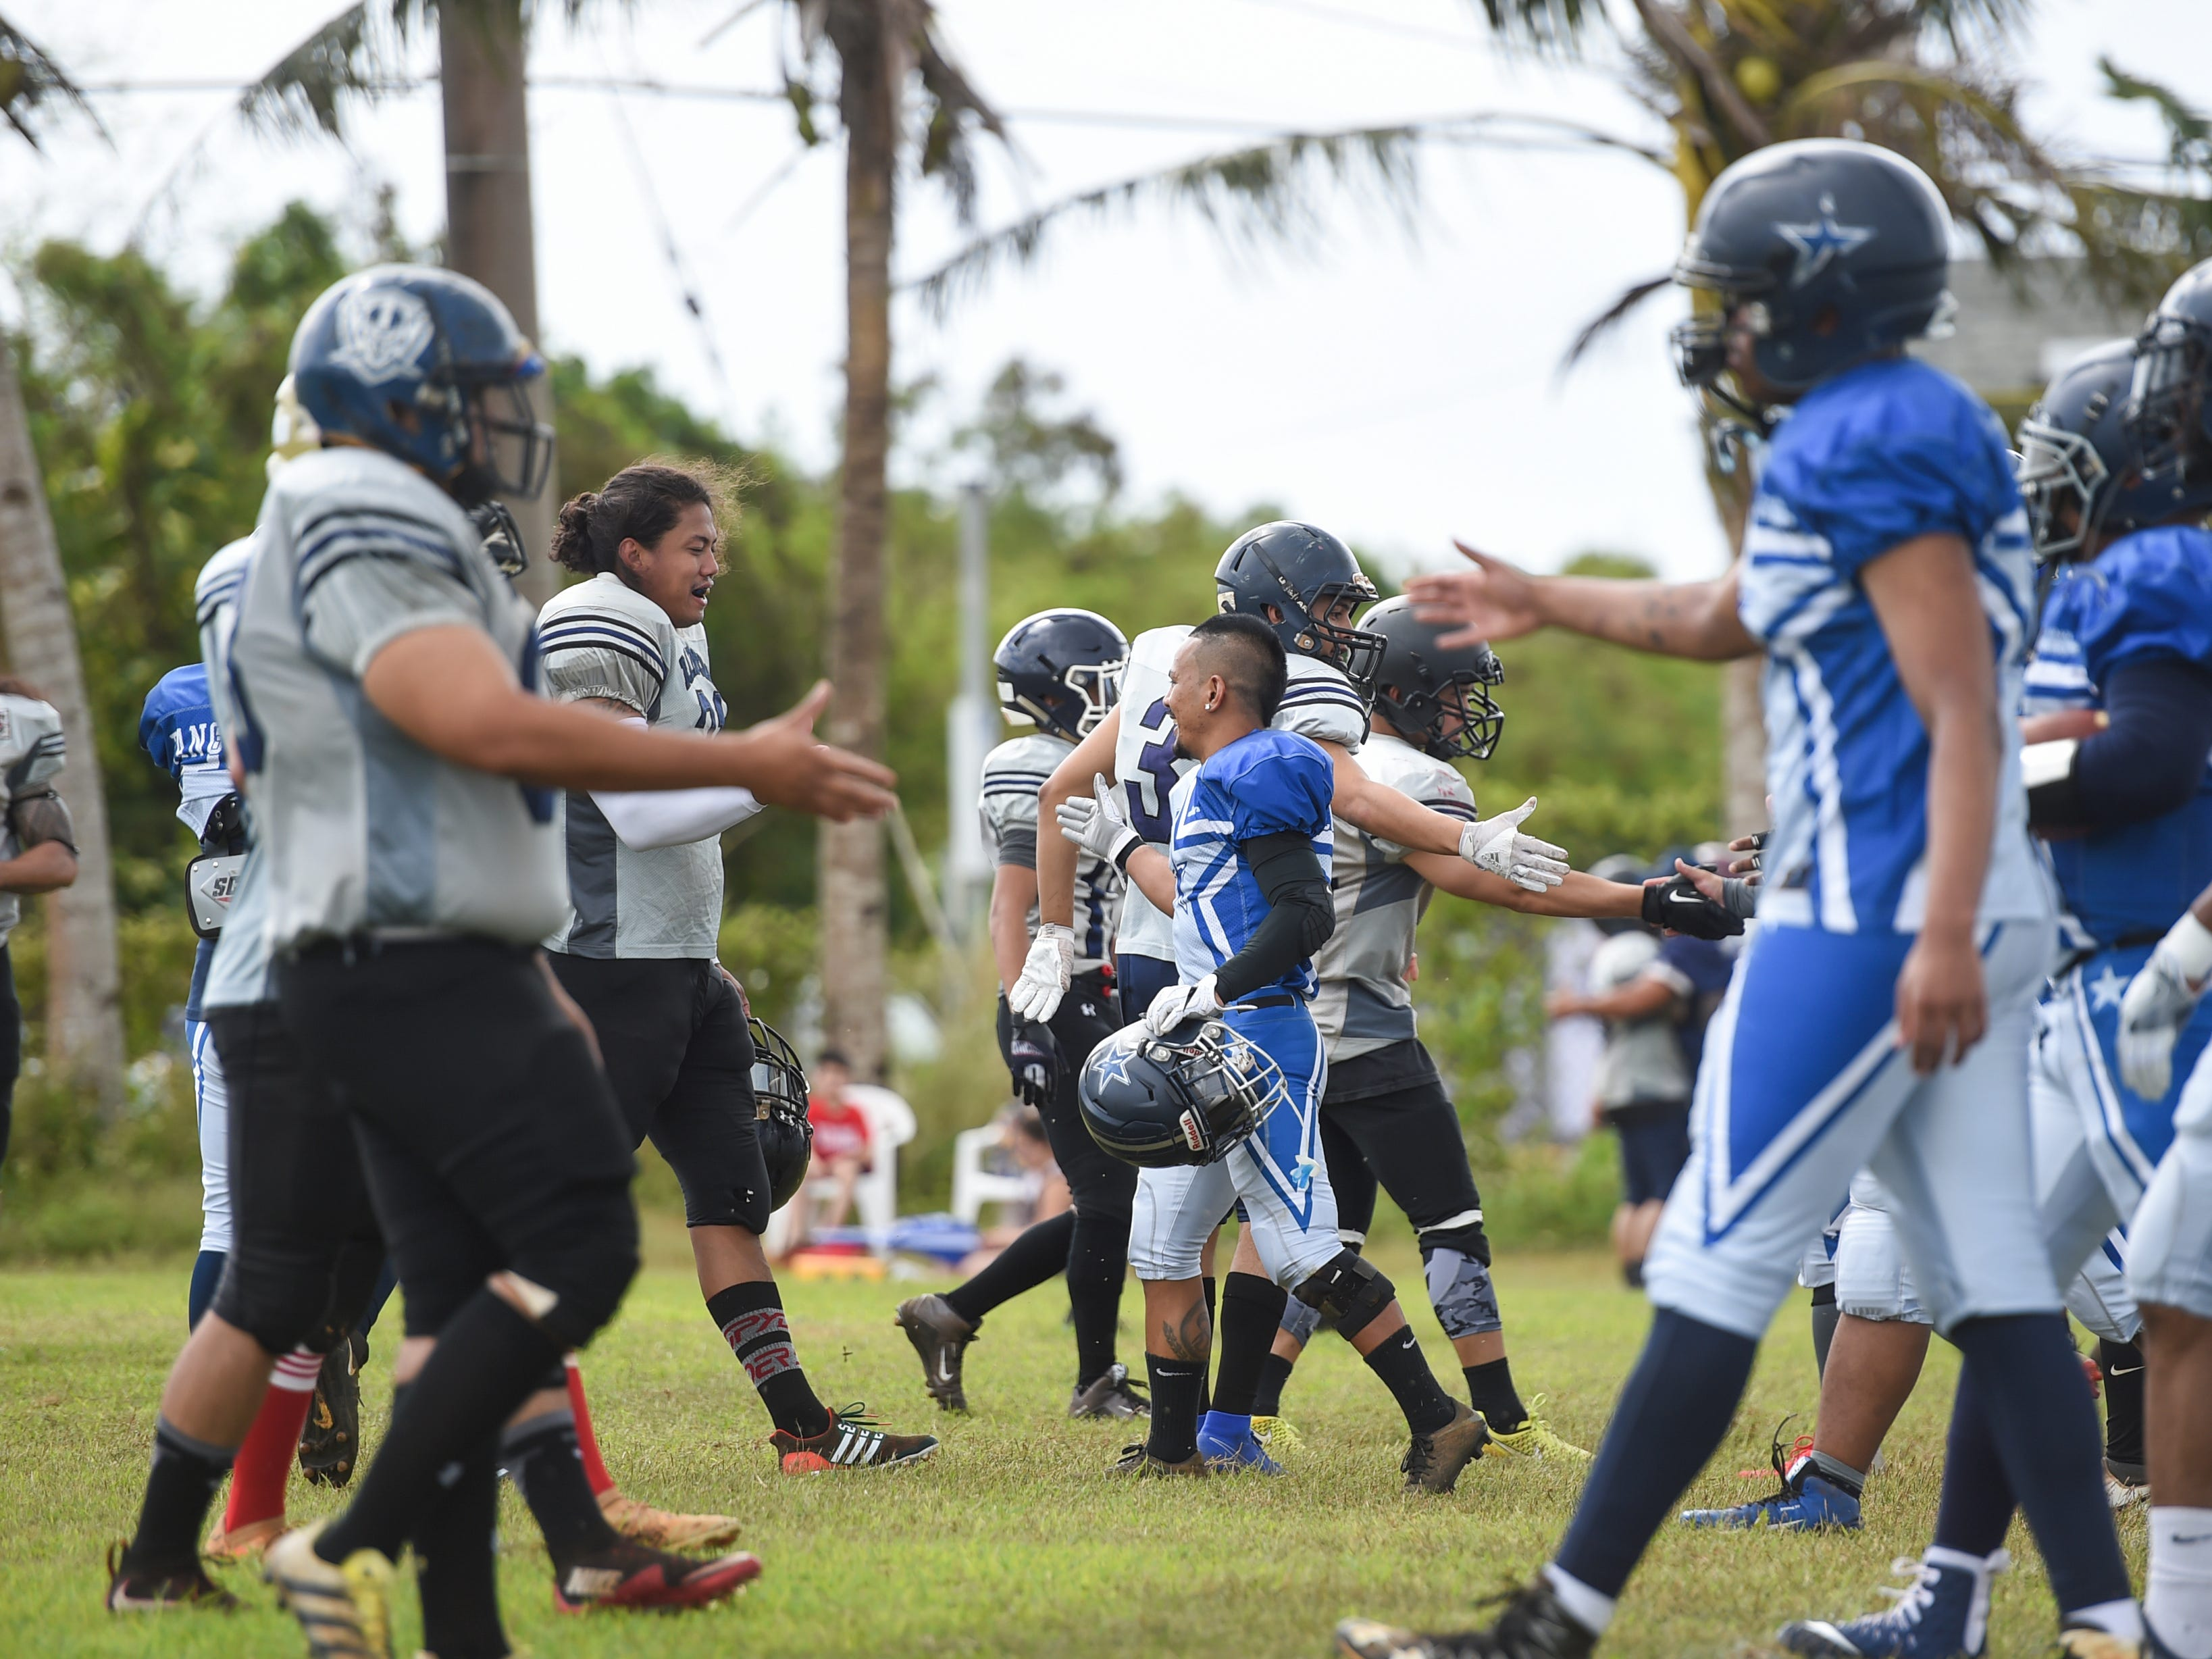 The Guam Raiders and Southern Cowboys display sportsmanship with pregame handshakes during their Budweiser Guahan Varsity Football League game at Eagles Field in Mangilao, Feb. 2, 2019.